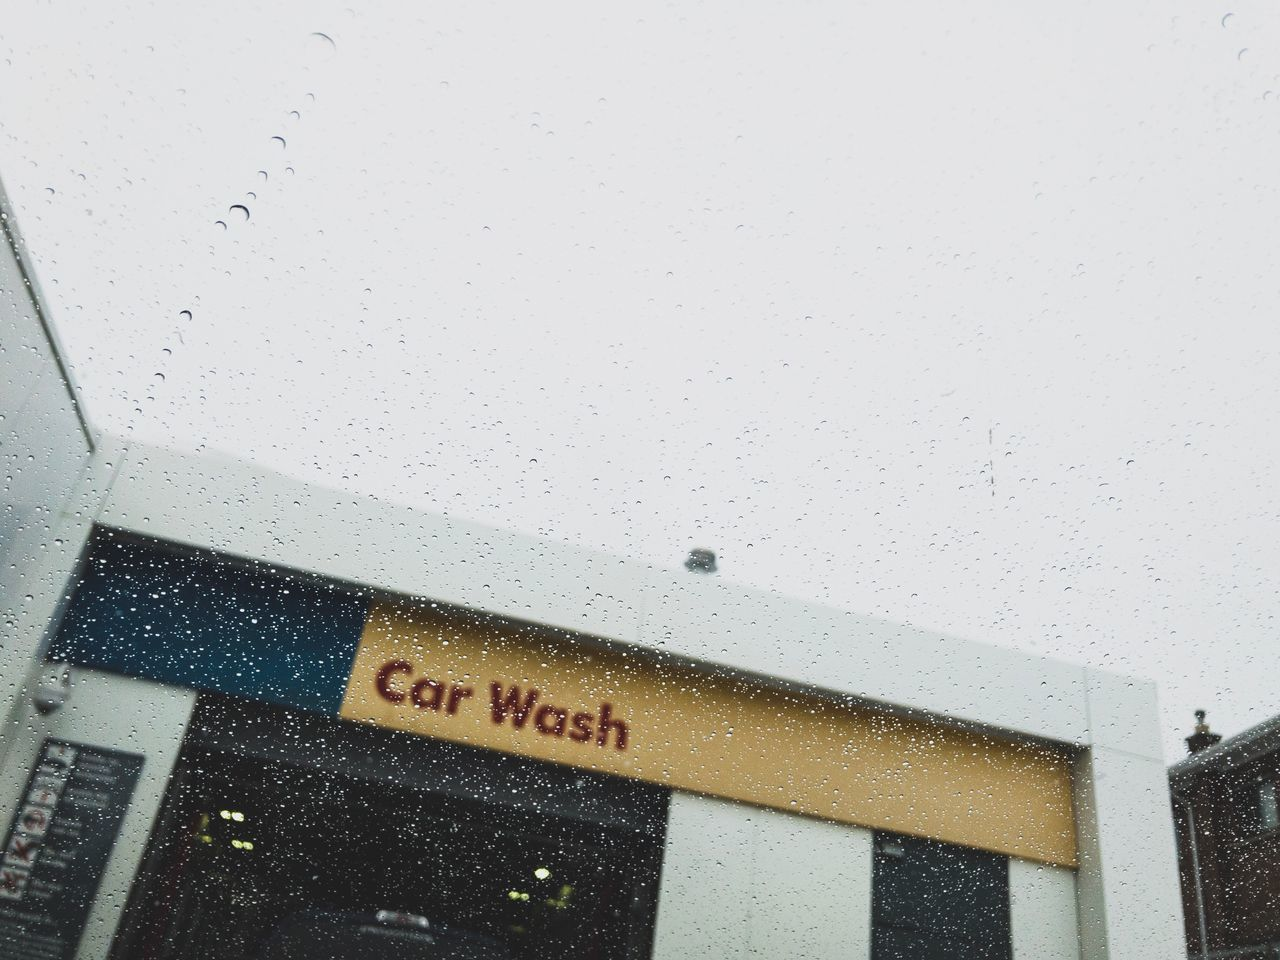 Communication Text No People Built Structure Day Iphoneonly IPhoneography Iphone7plusphoto IPhone7Plus Carwash CarWashTime Waterdrops